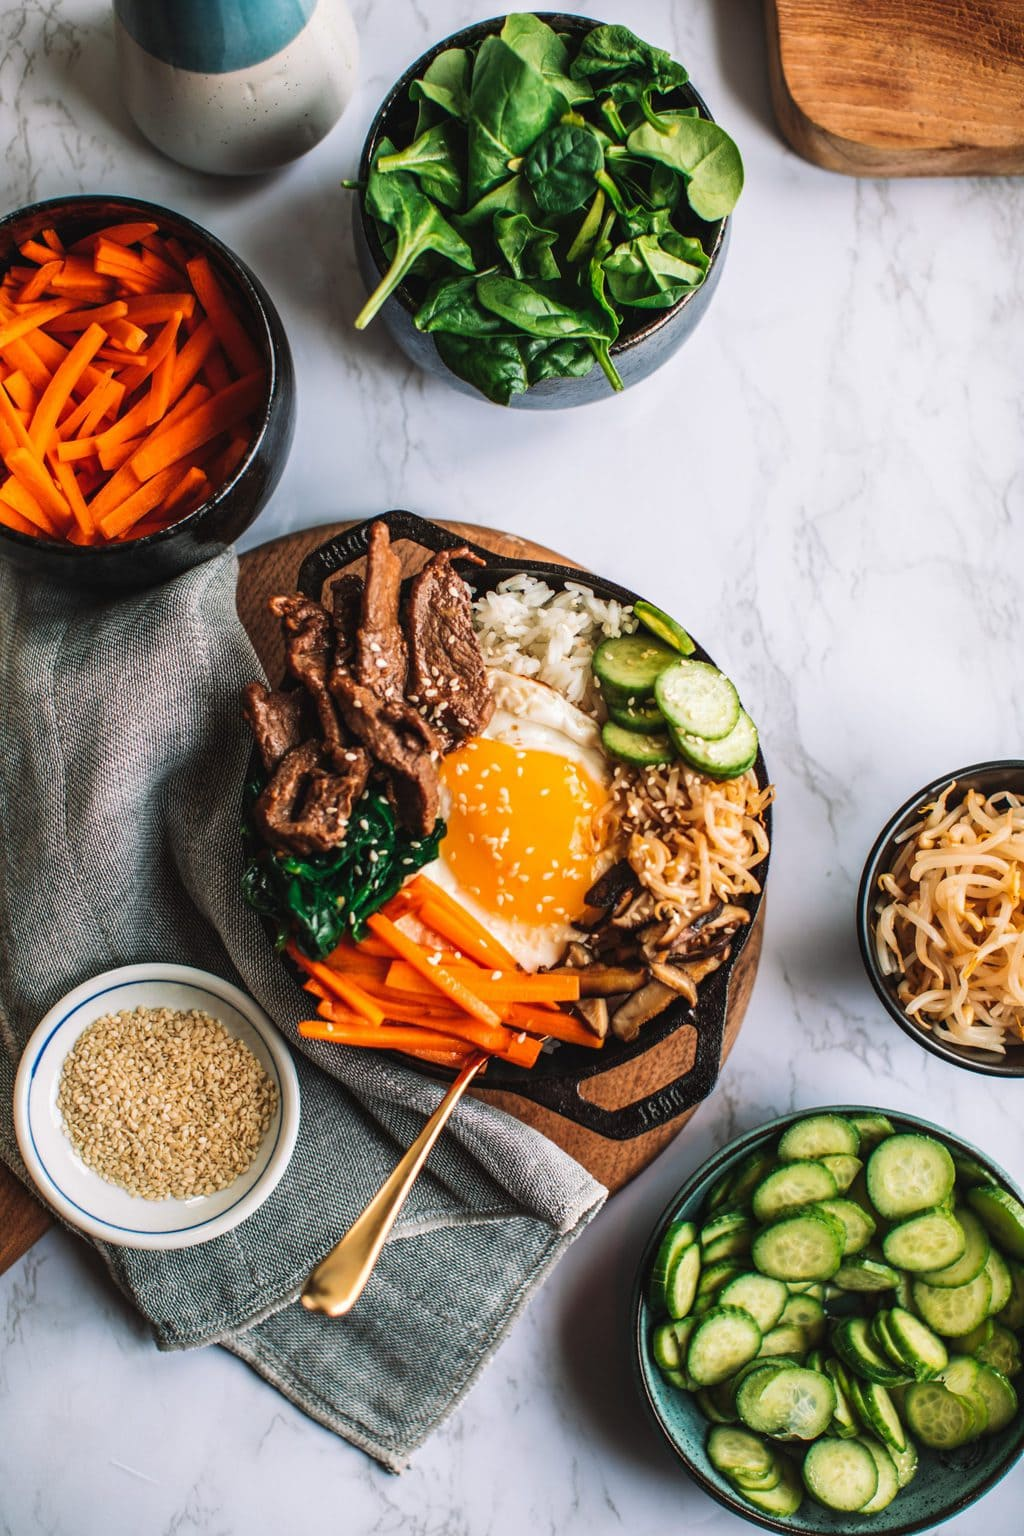 top shot of rice bowl and ingredients in smaller bowls alongside